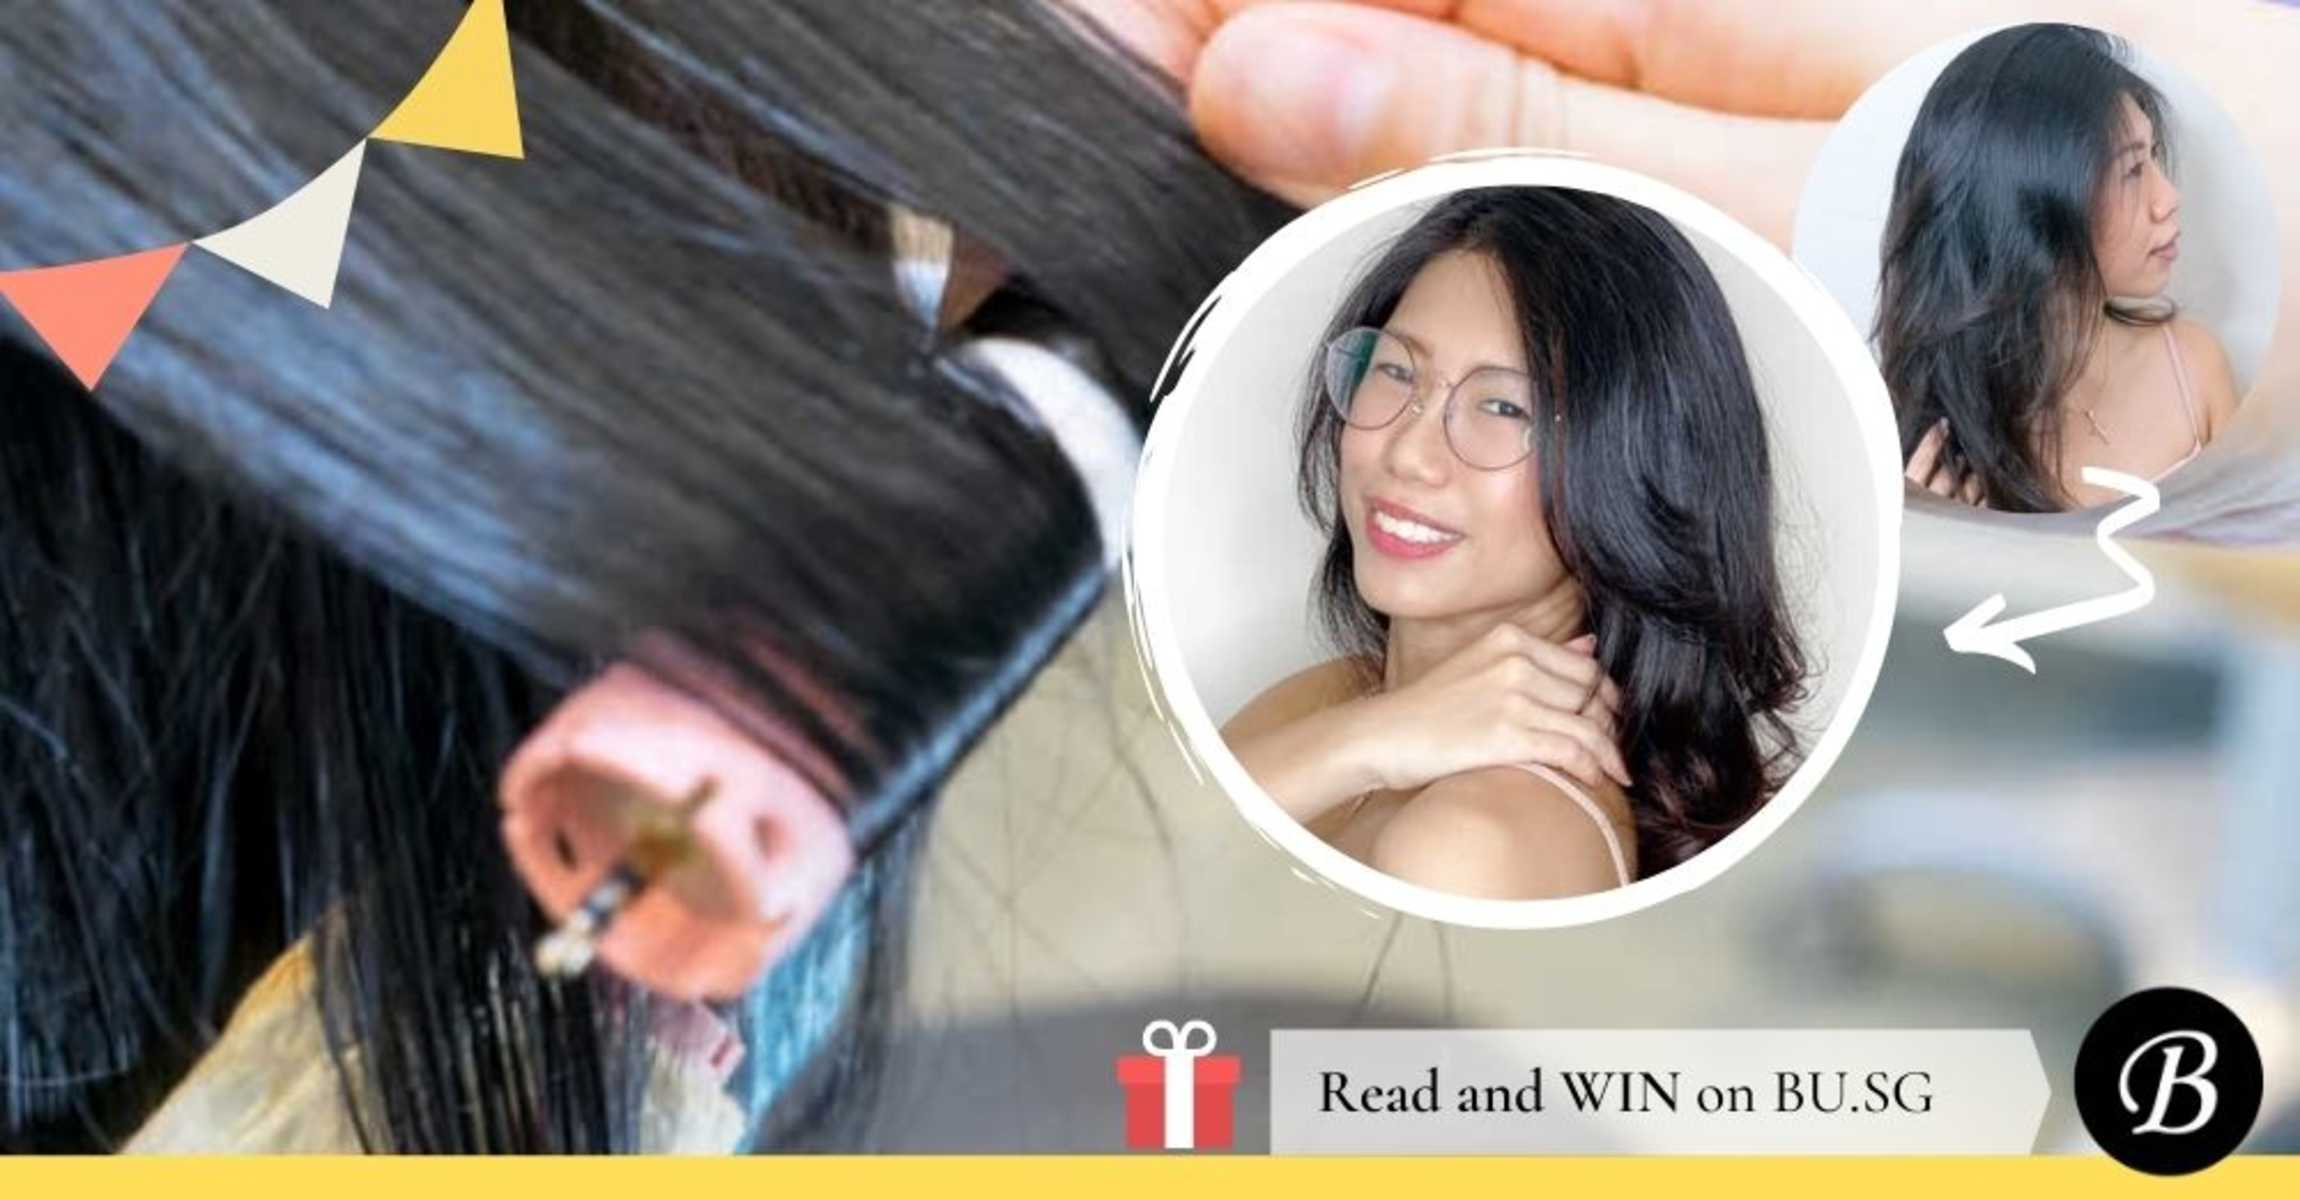 10 Reasons Why This New 2-in-1 Advante Treatment Perm is Raved by So Many Top Stylists in Singapore